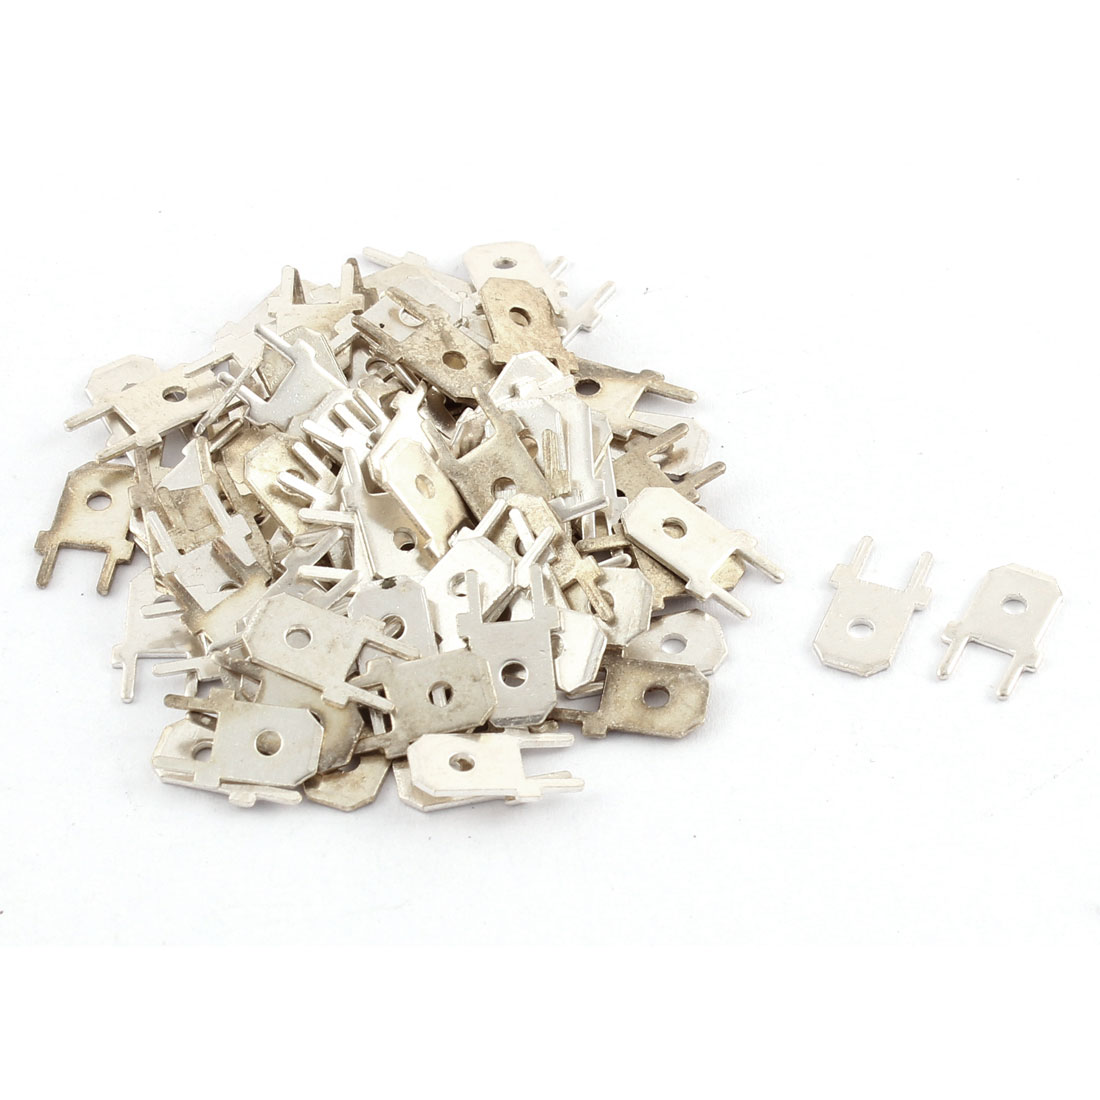 100 Pcs Soldering Non Insulated Bare Ring Lug Terminal Connector Silver Tone 13MM